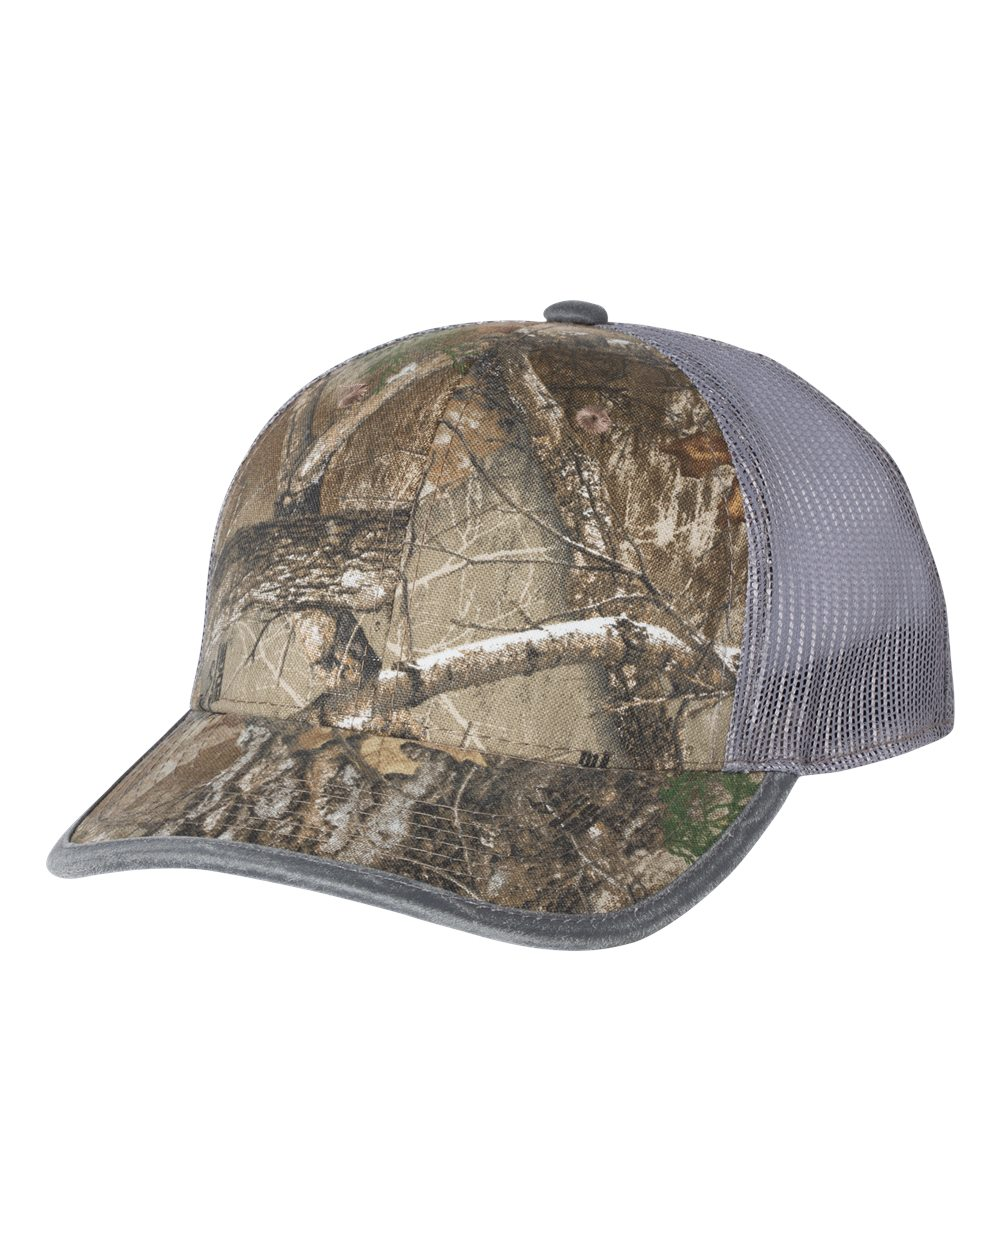 Outdoor Cap CBW100M - Weathered Bound Visor Trucker Cap